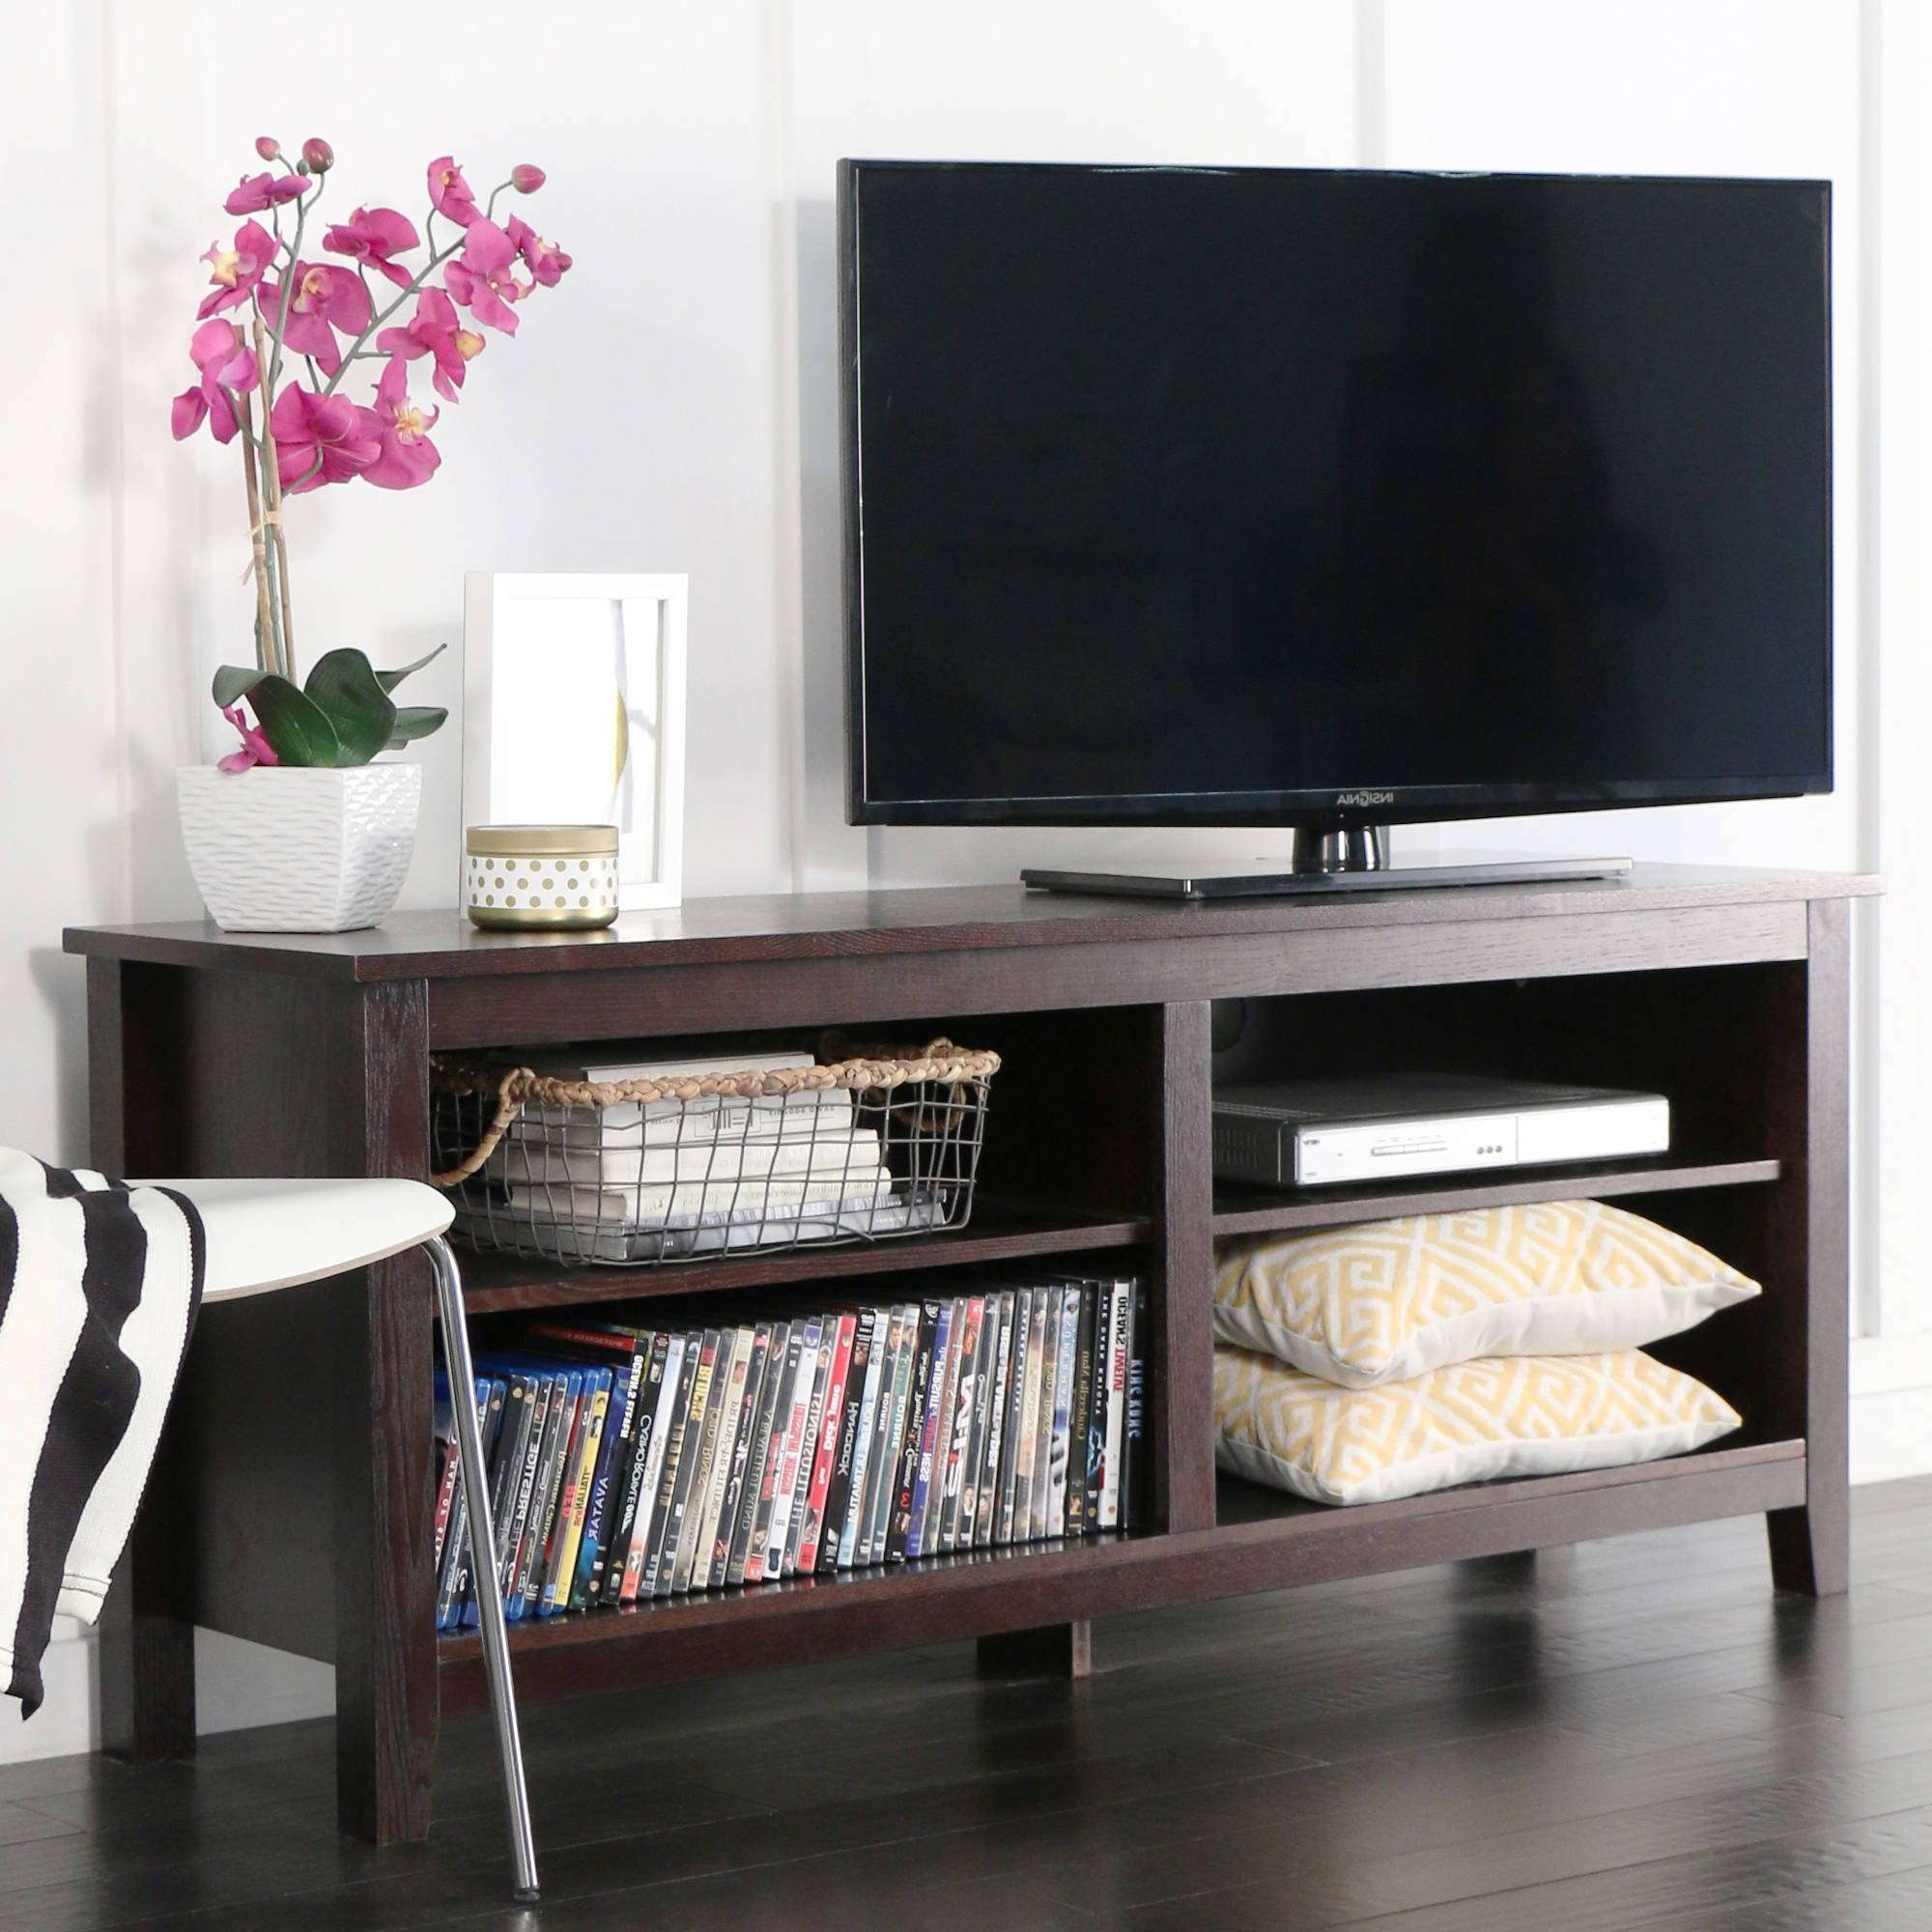 Tv : Upright Tv Stands Stimulating Tall Upright Tv Stands Within Upright Tv Stands (View 18 of 20)